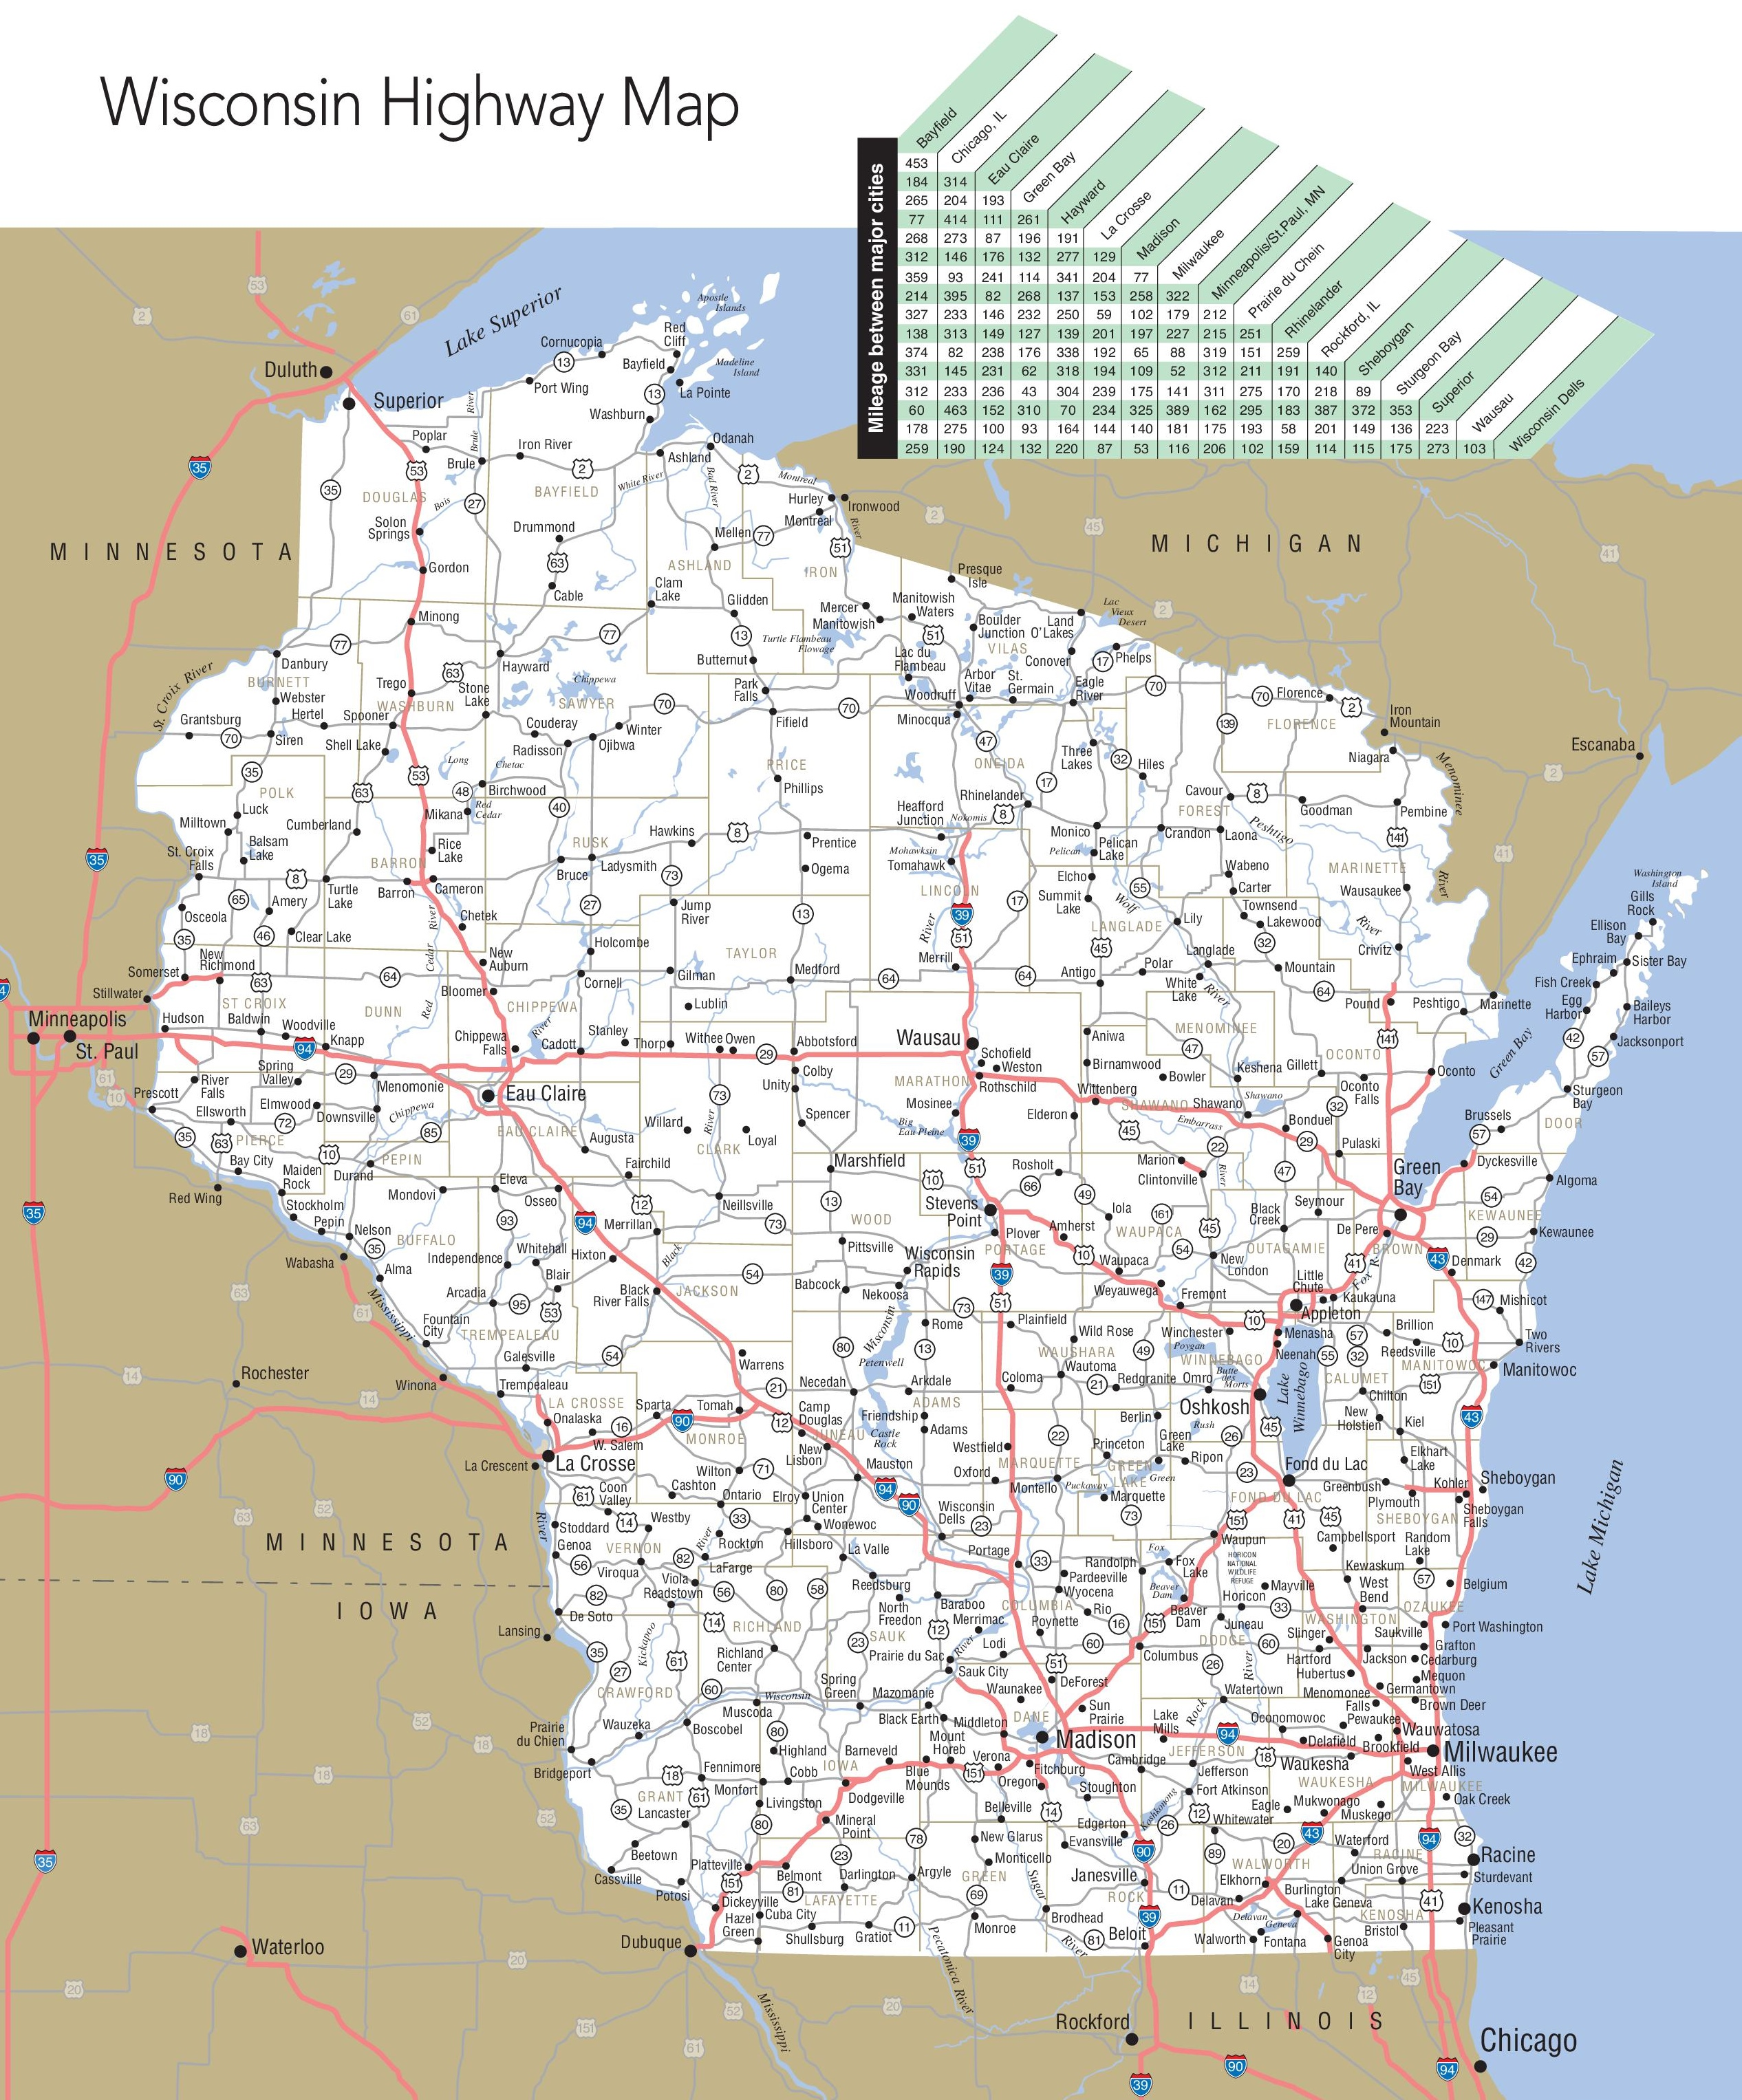 Wisconsin State Maps | USA | Maps of Wisconsin (WI)